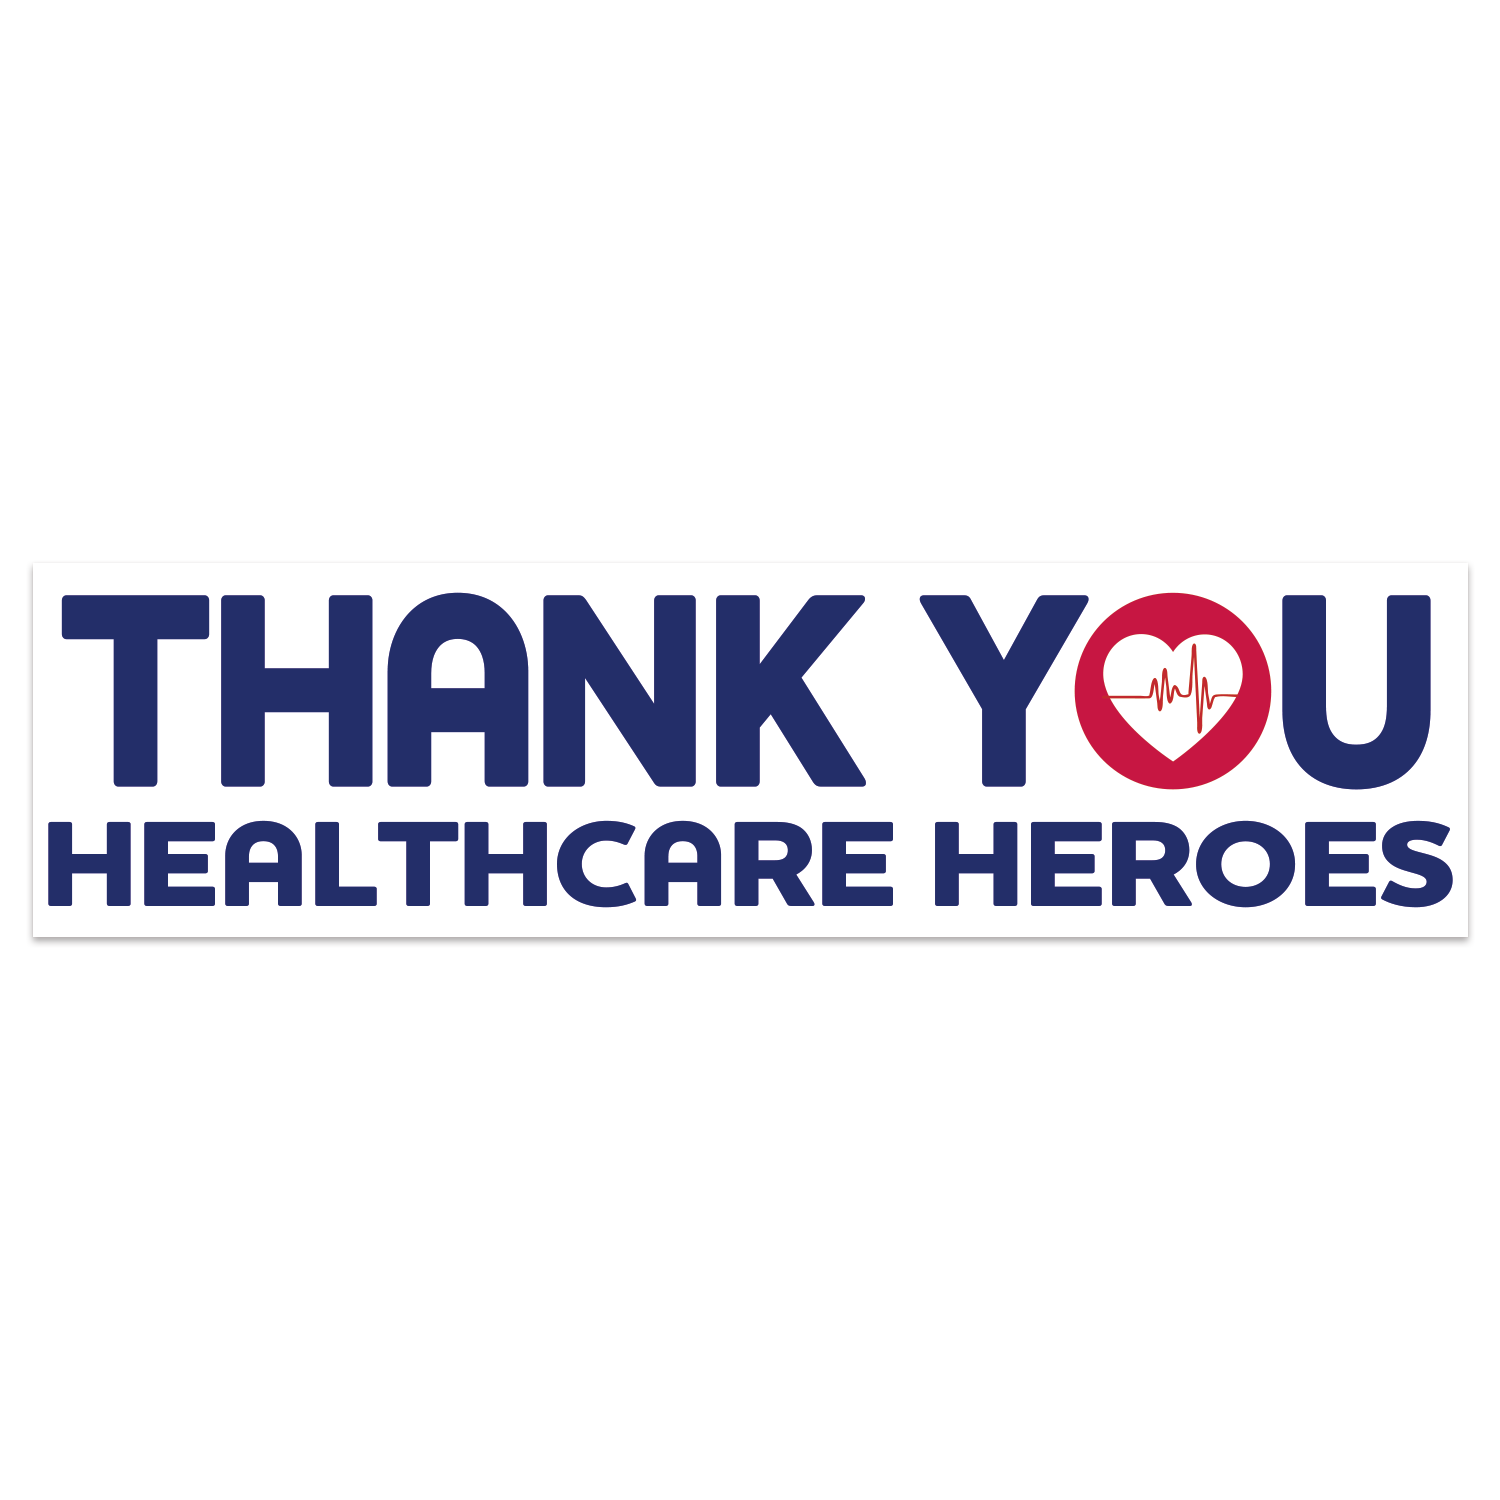 https://www.sswprinting.com/images/products_gallery_images/595101_Thank-you-Healthcare-Heroes-2_hi-res.png